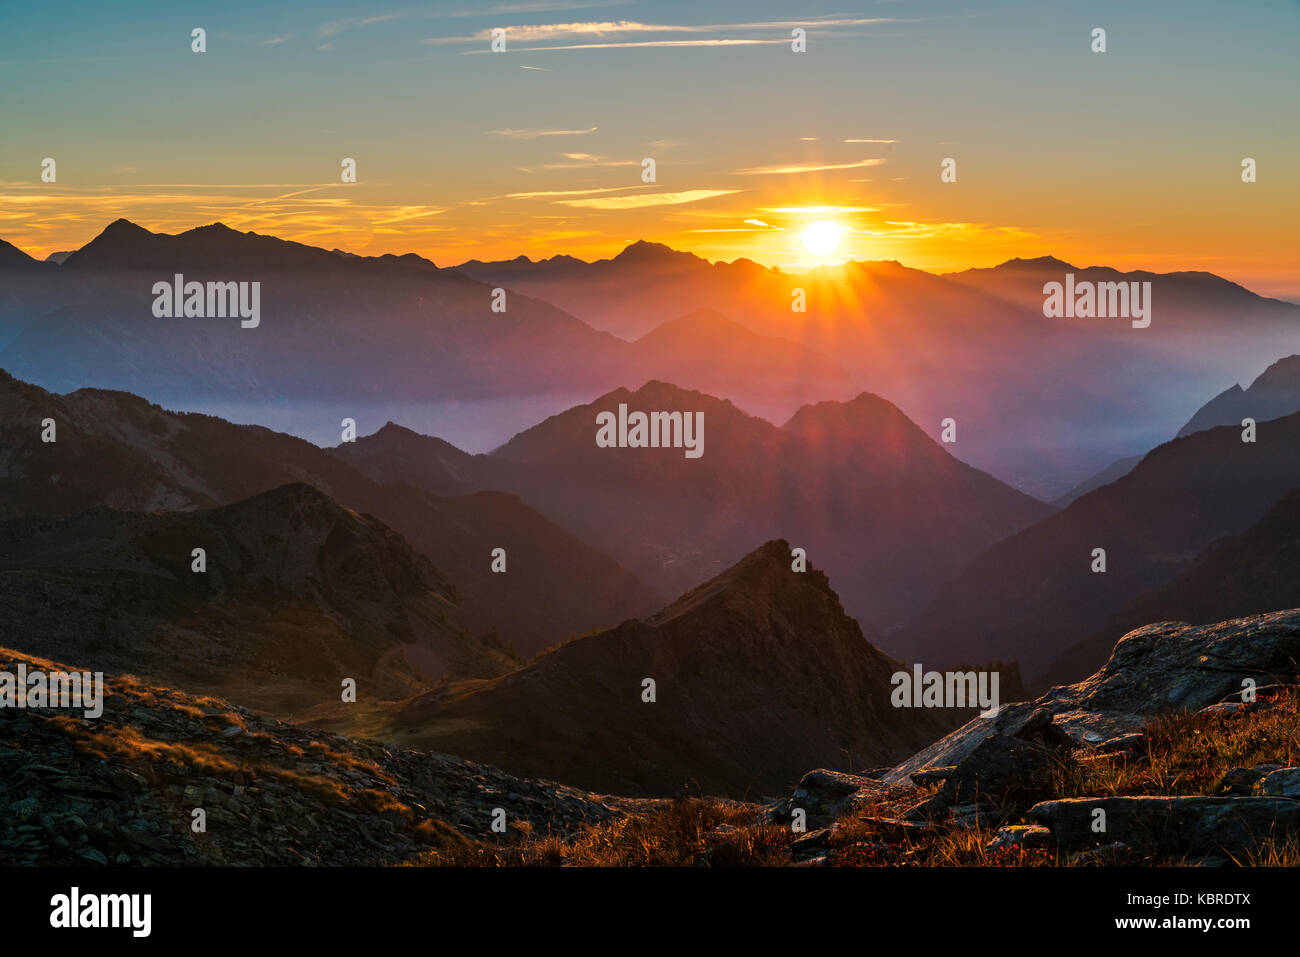 The sun rises at dawn on a mountain chain, Mont Avic Natural park, Aosta Valley, Italy - Stock Image